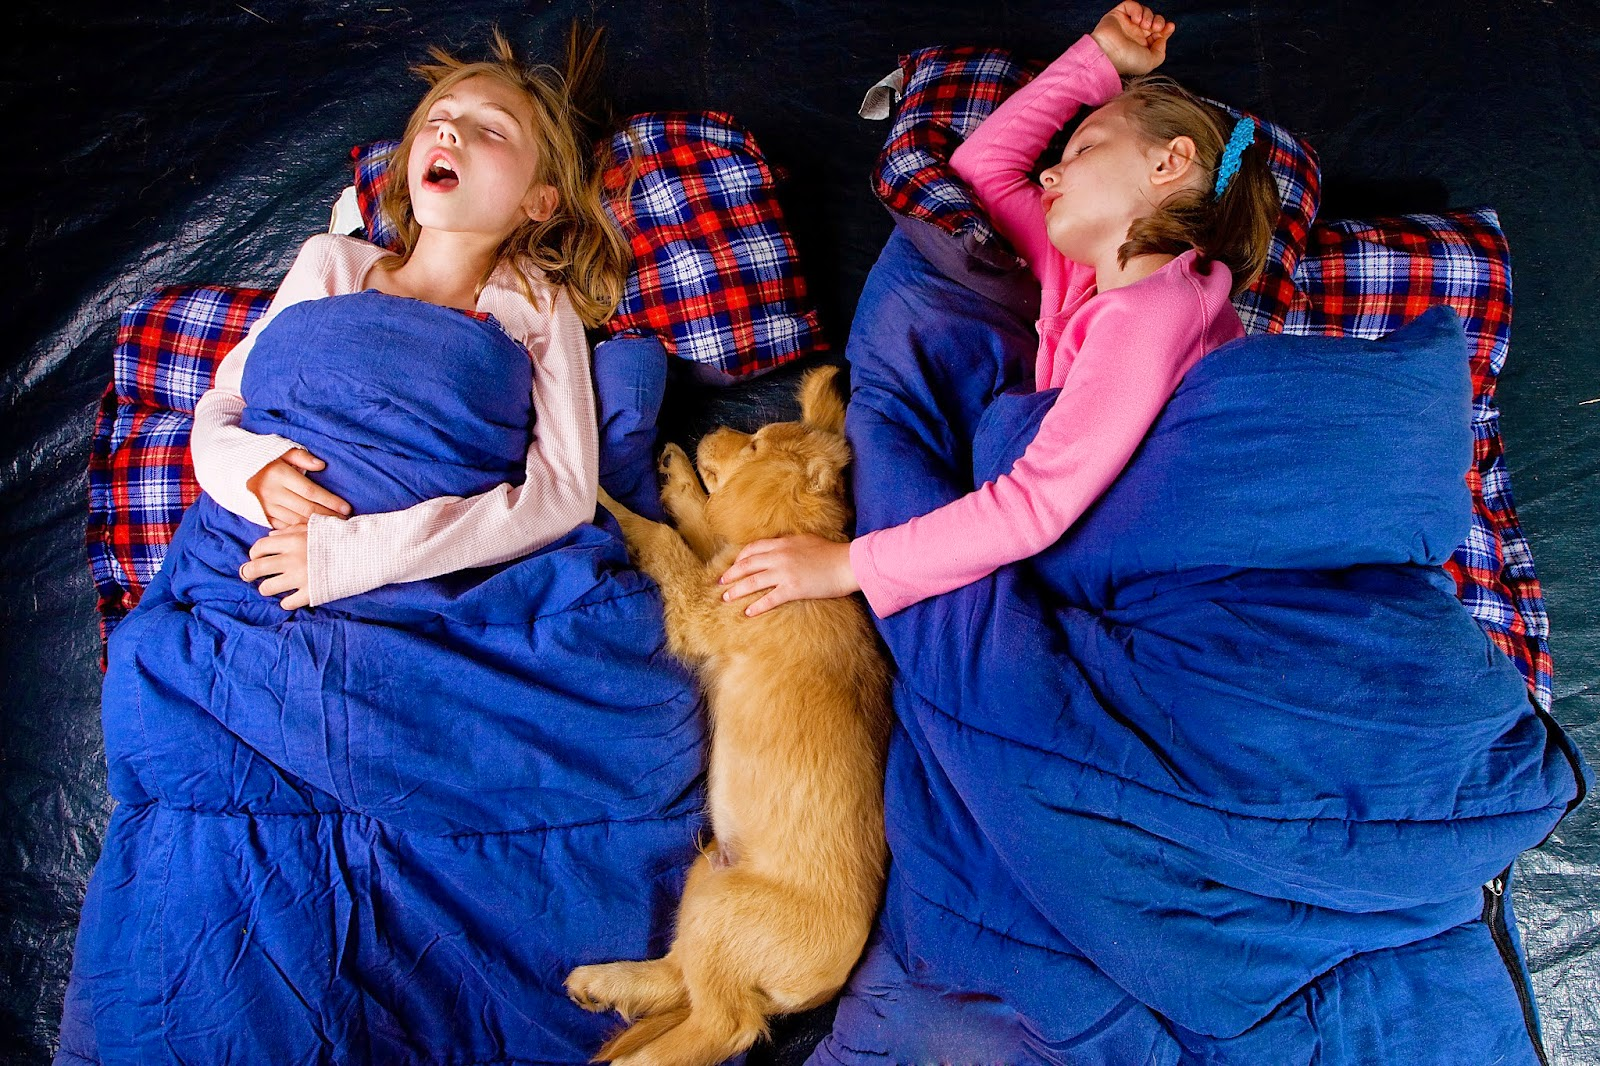 sleeping bag game:best sleepover activities